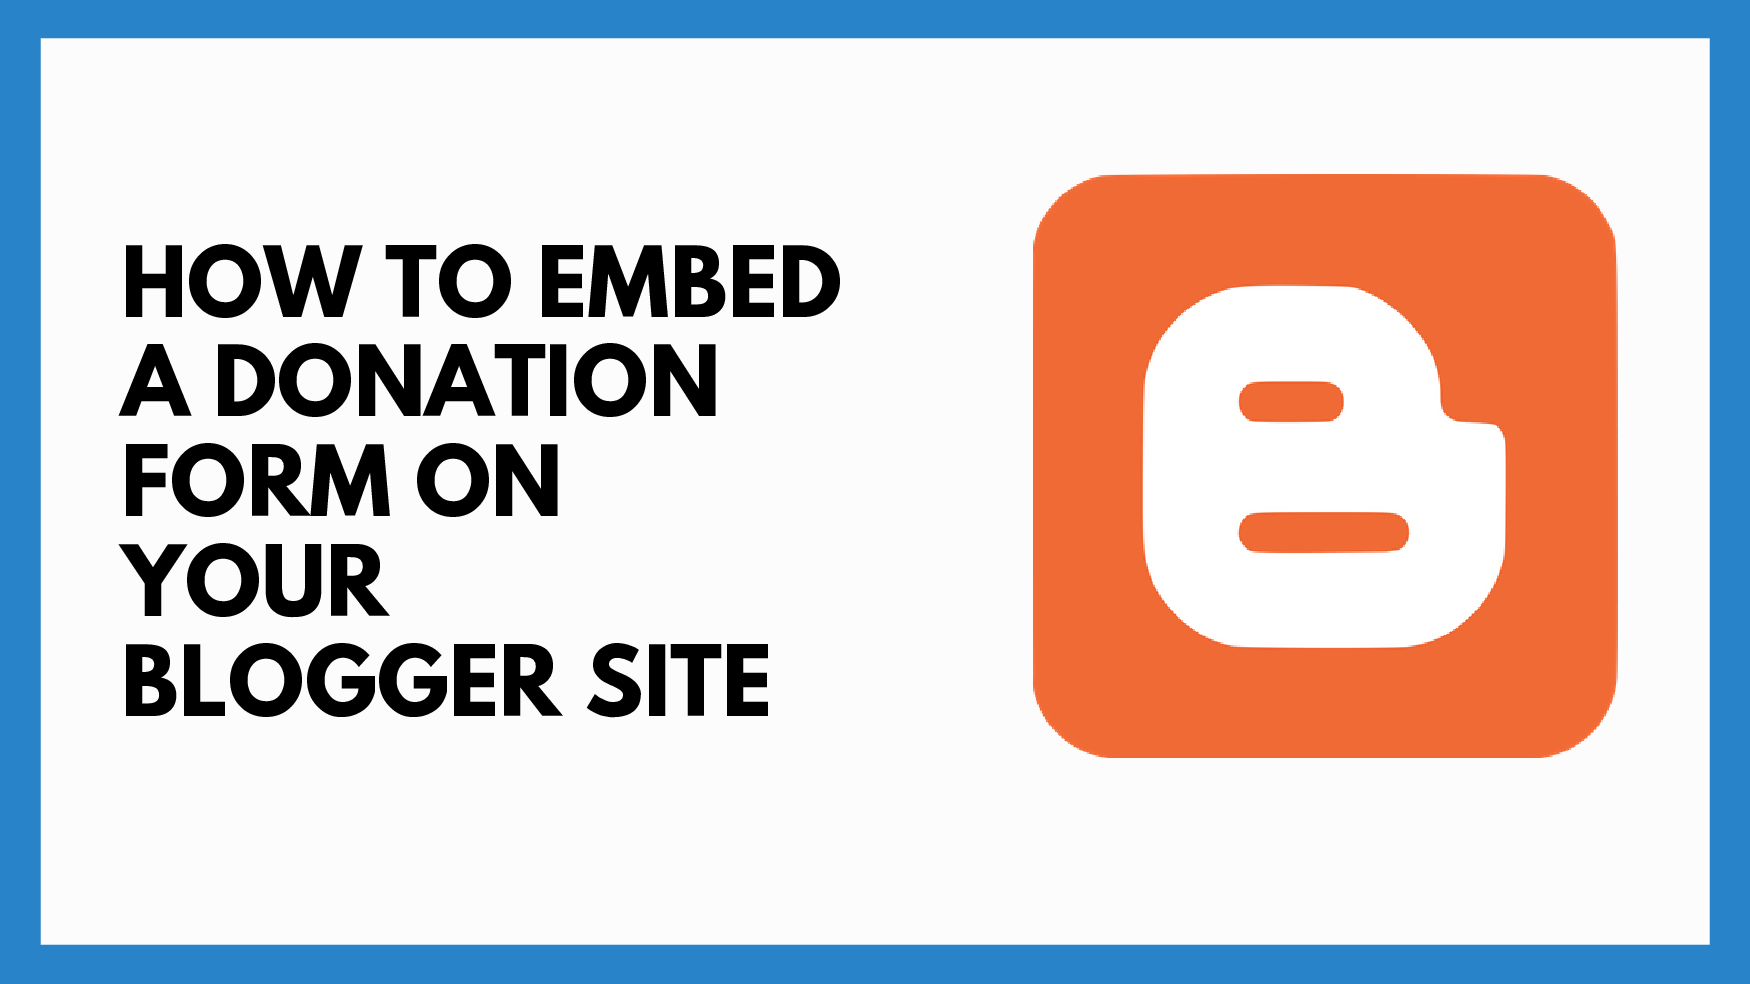 How To Embed a Donation Form on Your Blogger Site